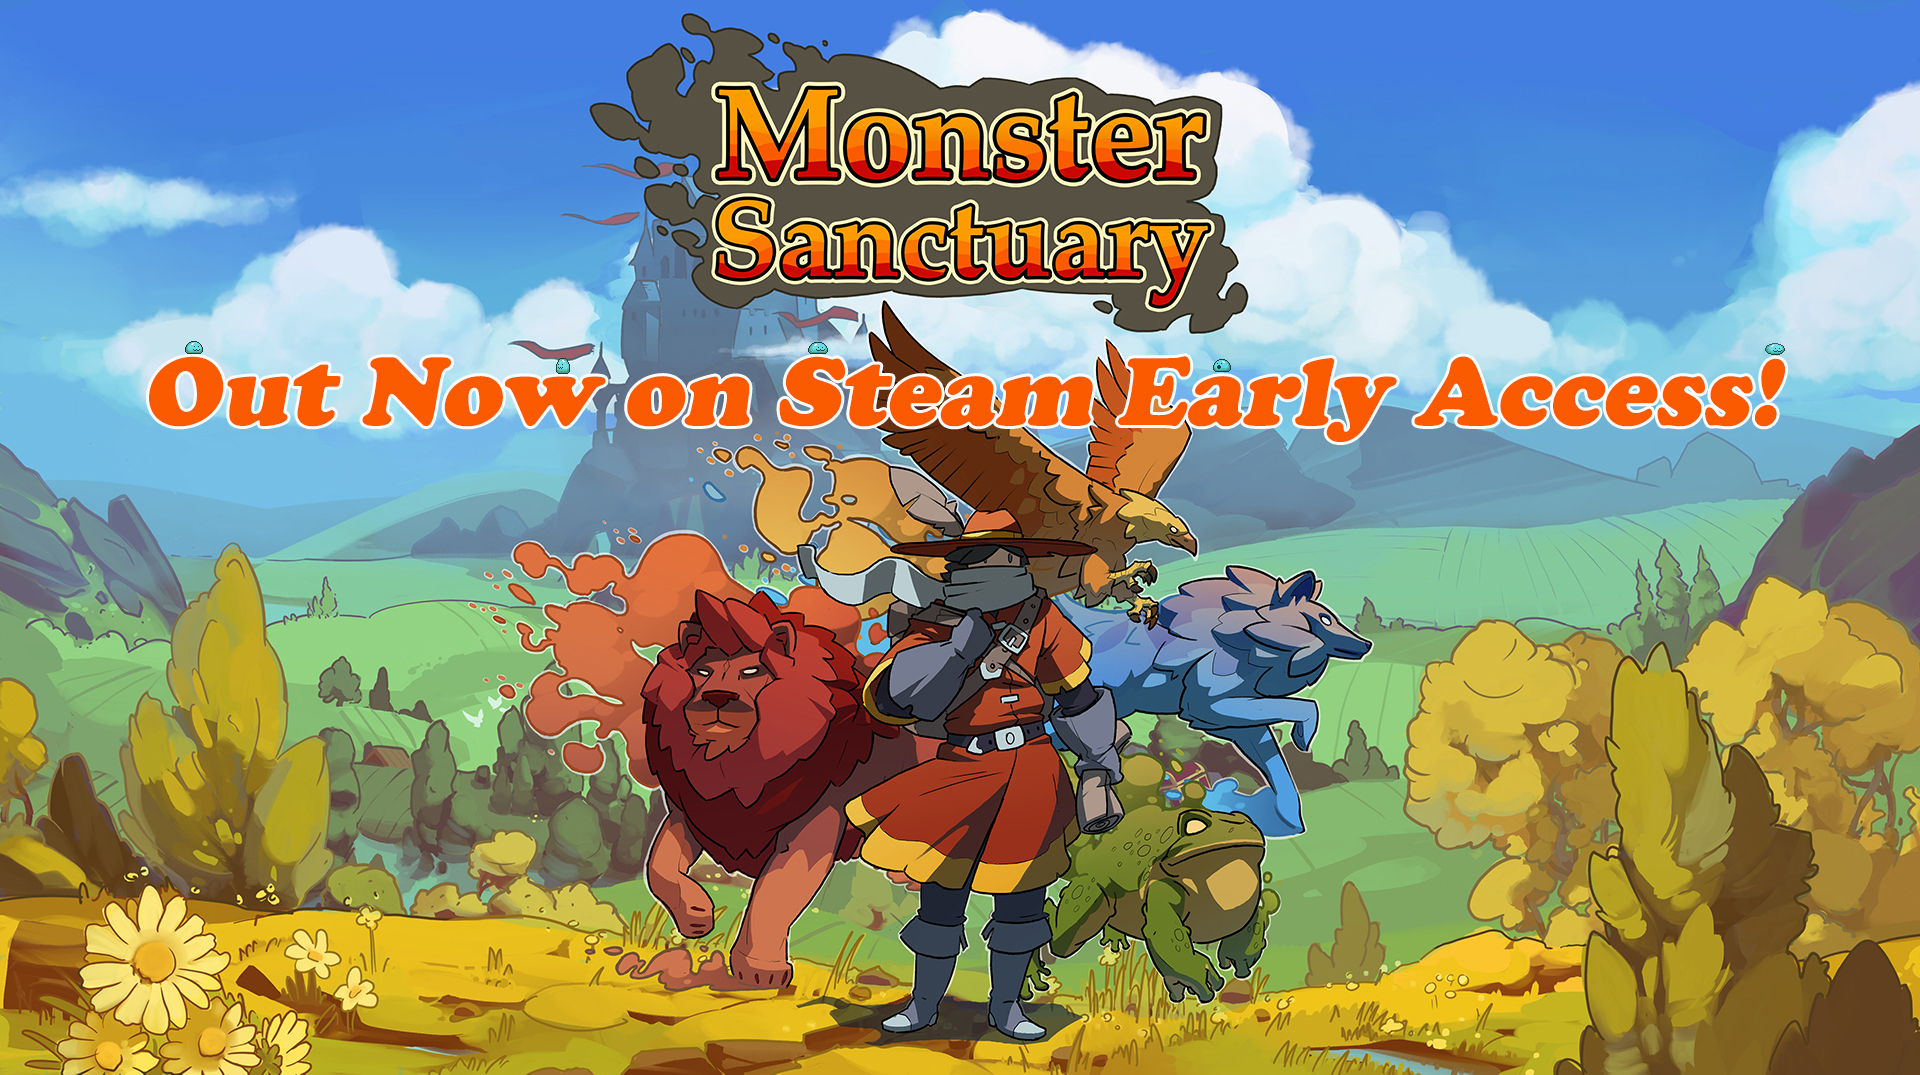 Monster Sanctuary – Out Now on Steam Early Access!